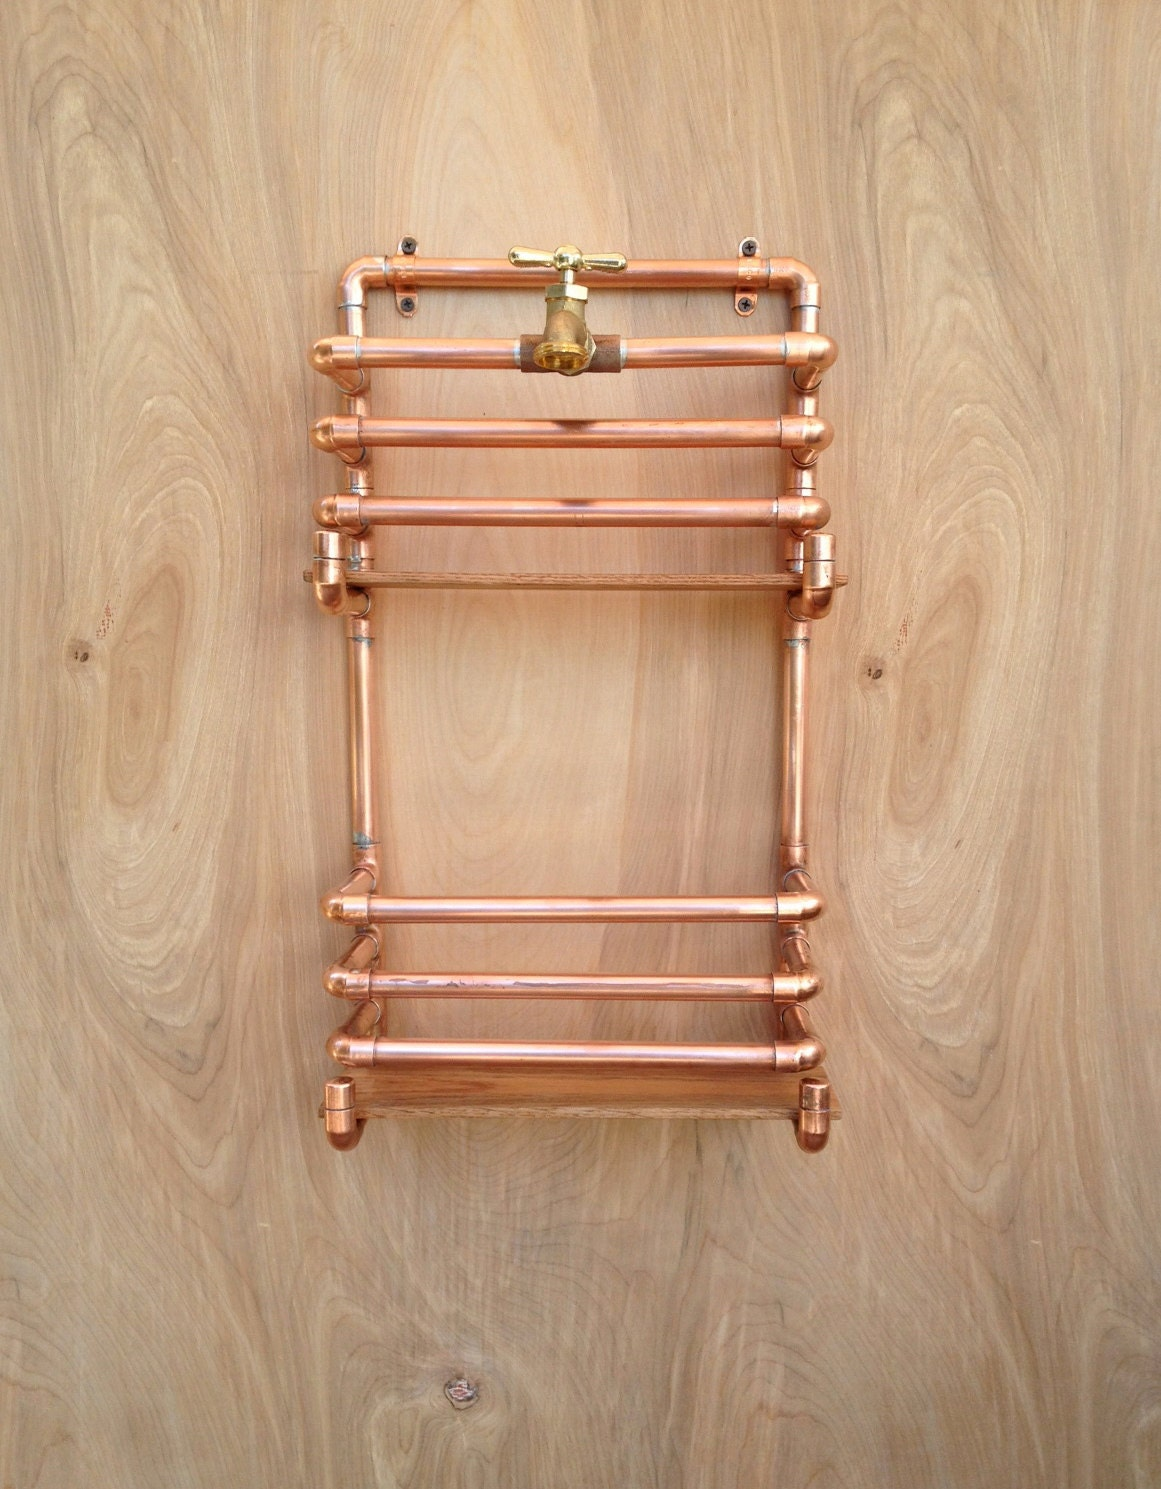 Copper Magazine Rack Wall Storage Rack Industrial By Macandlexie